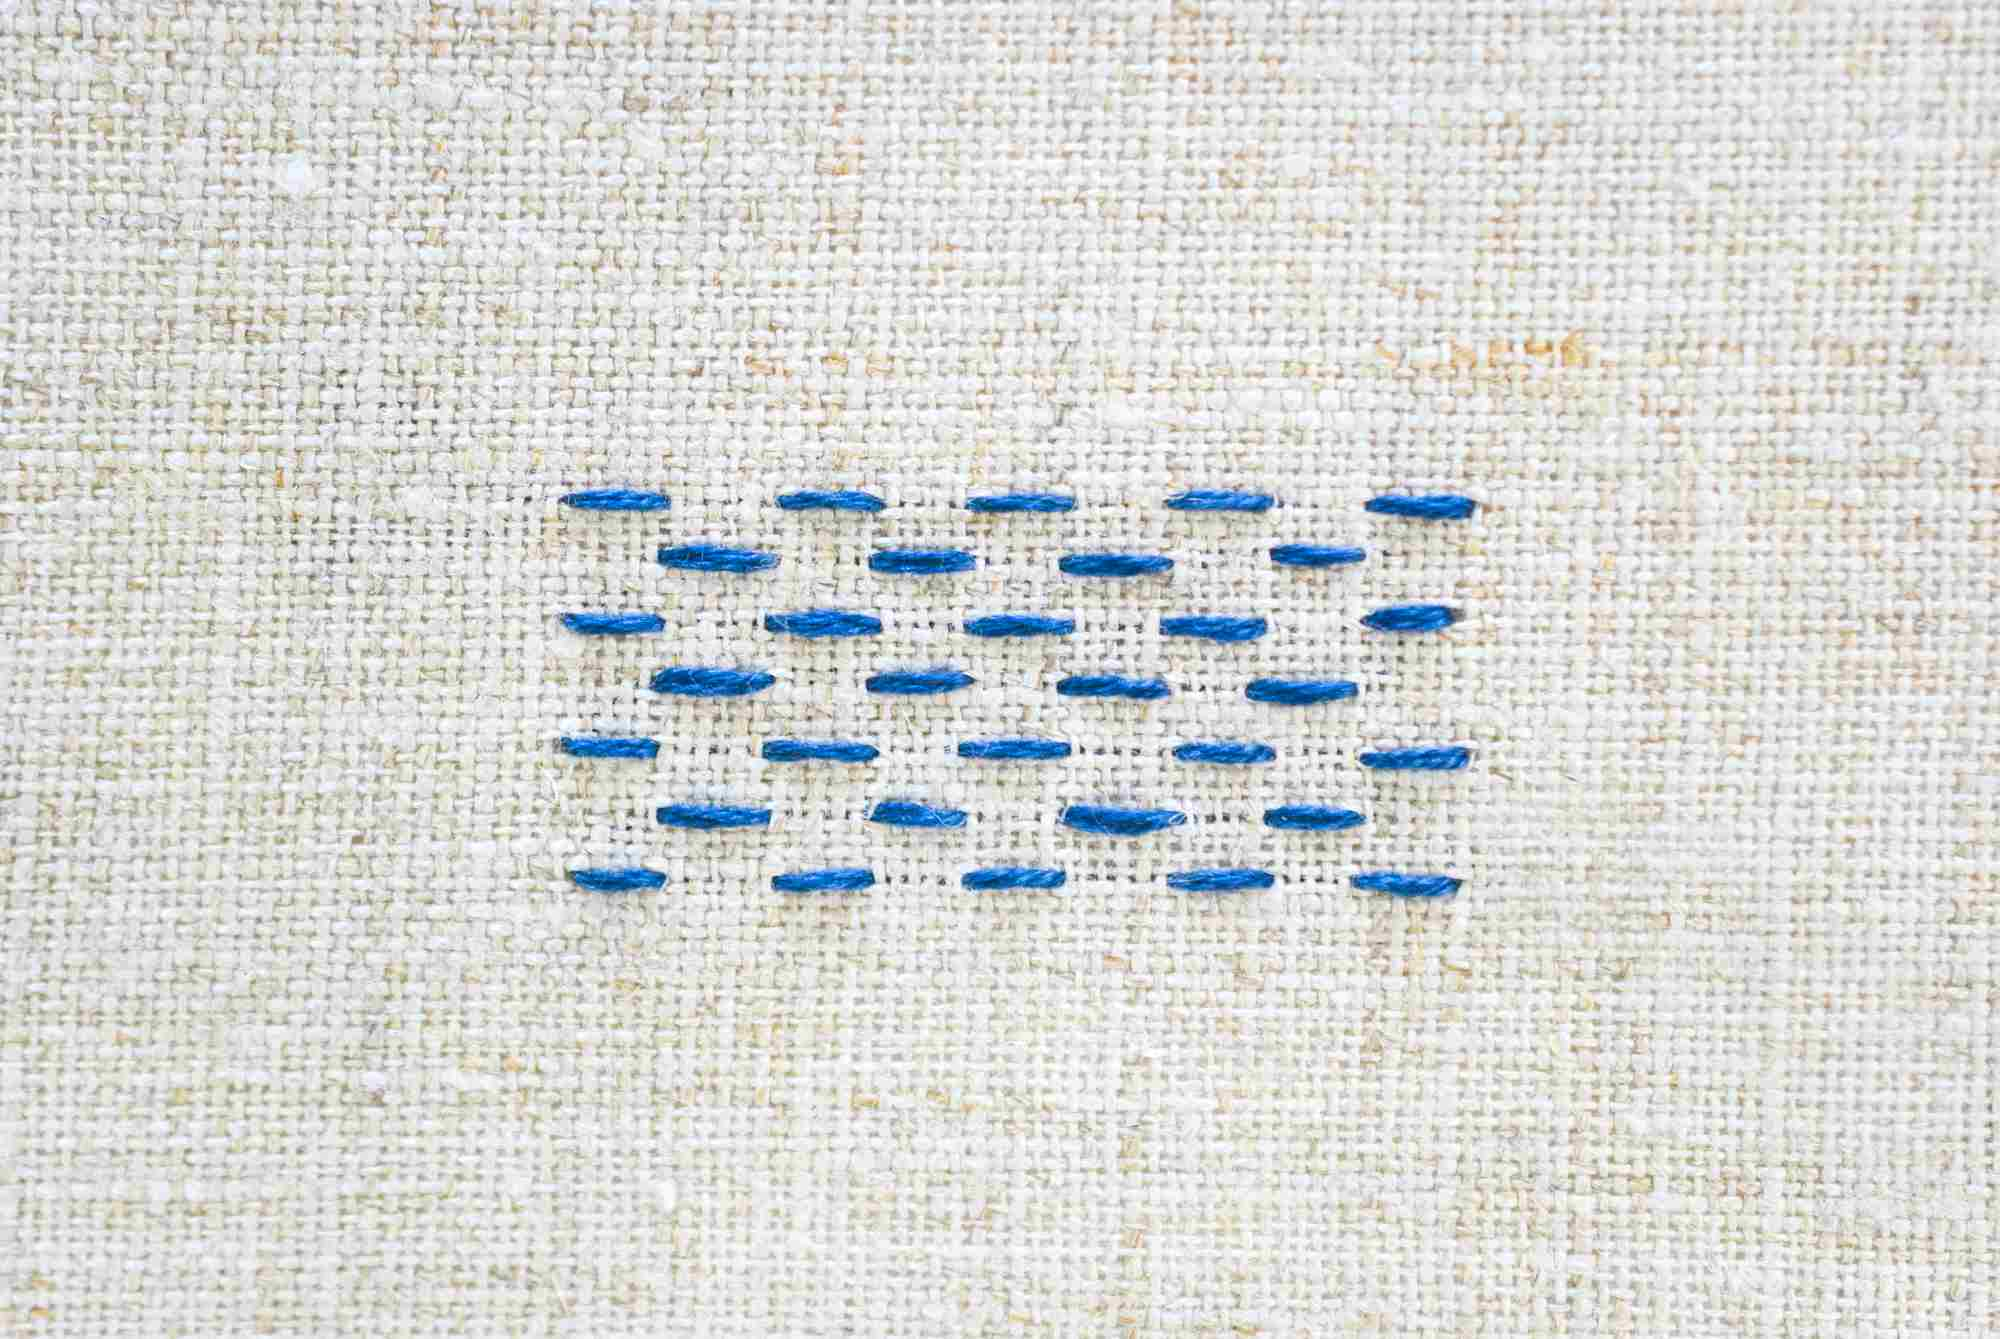 How To Work A Running Stitch For Embroidery And Sewing